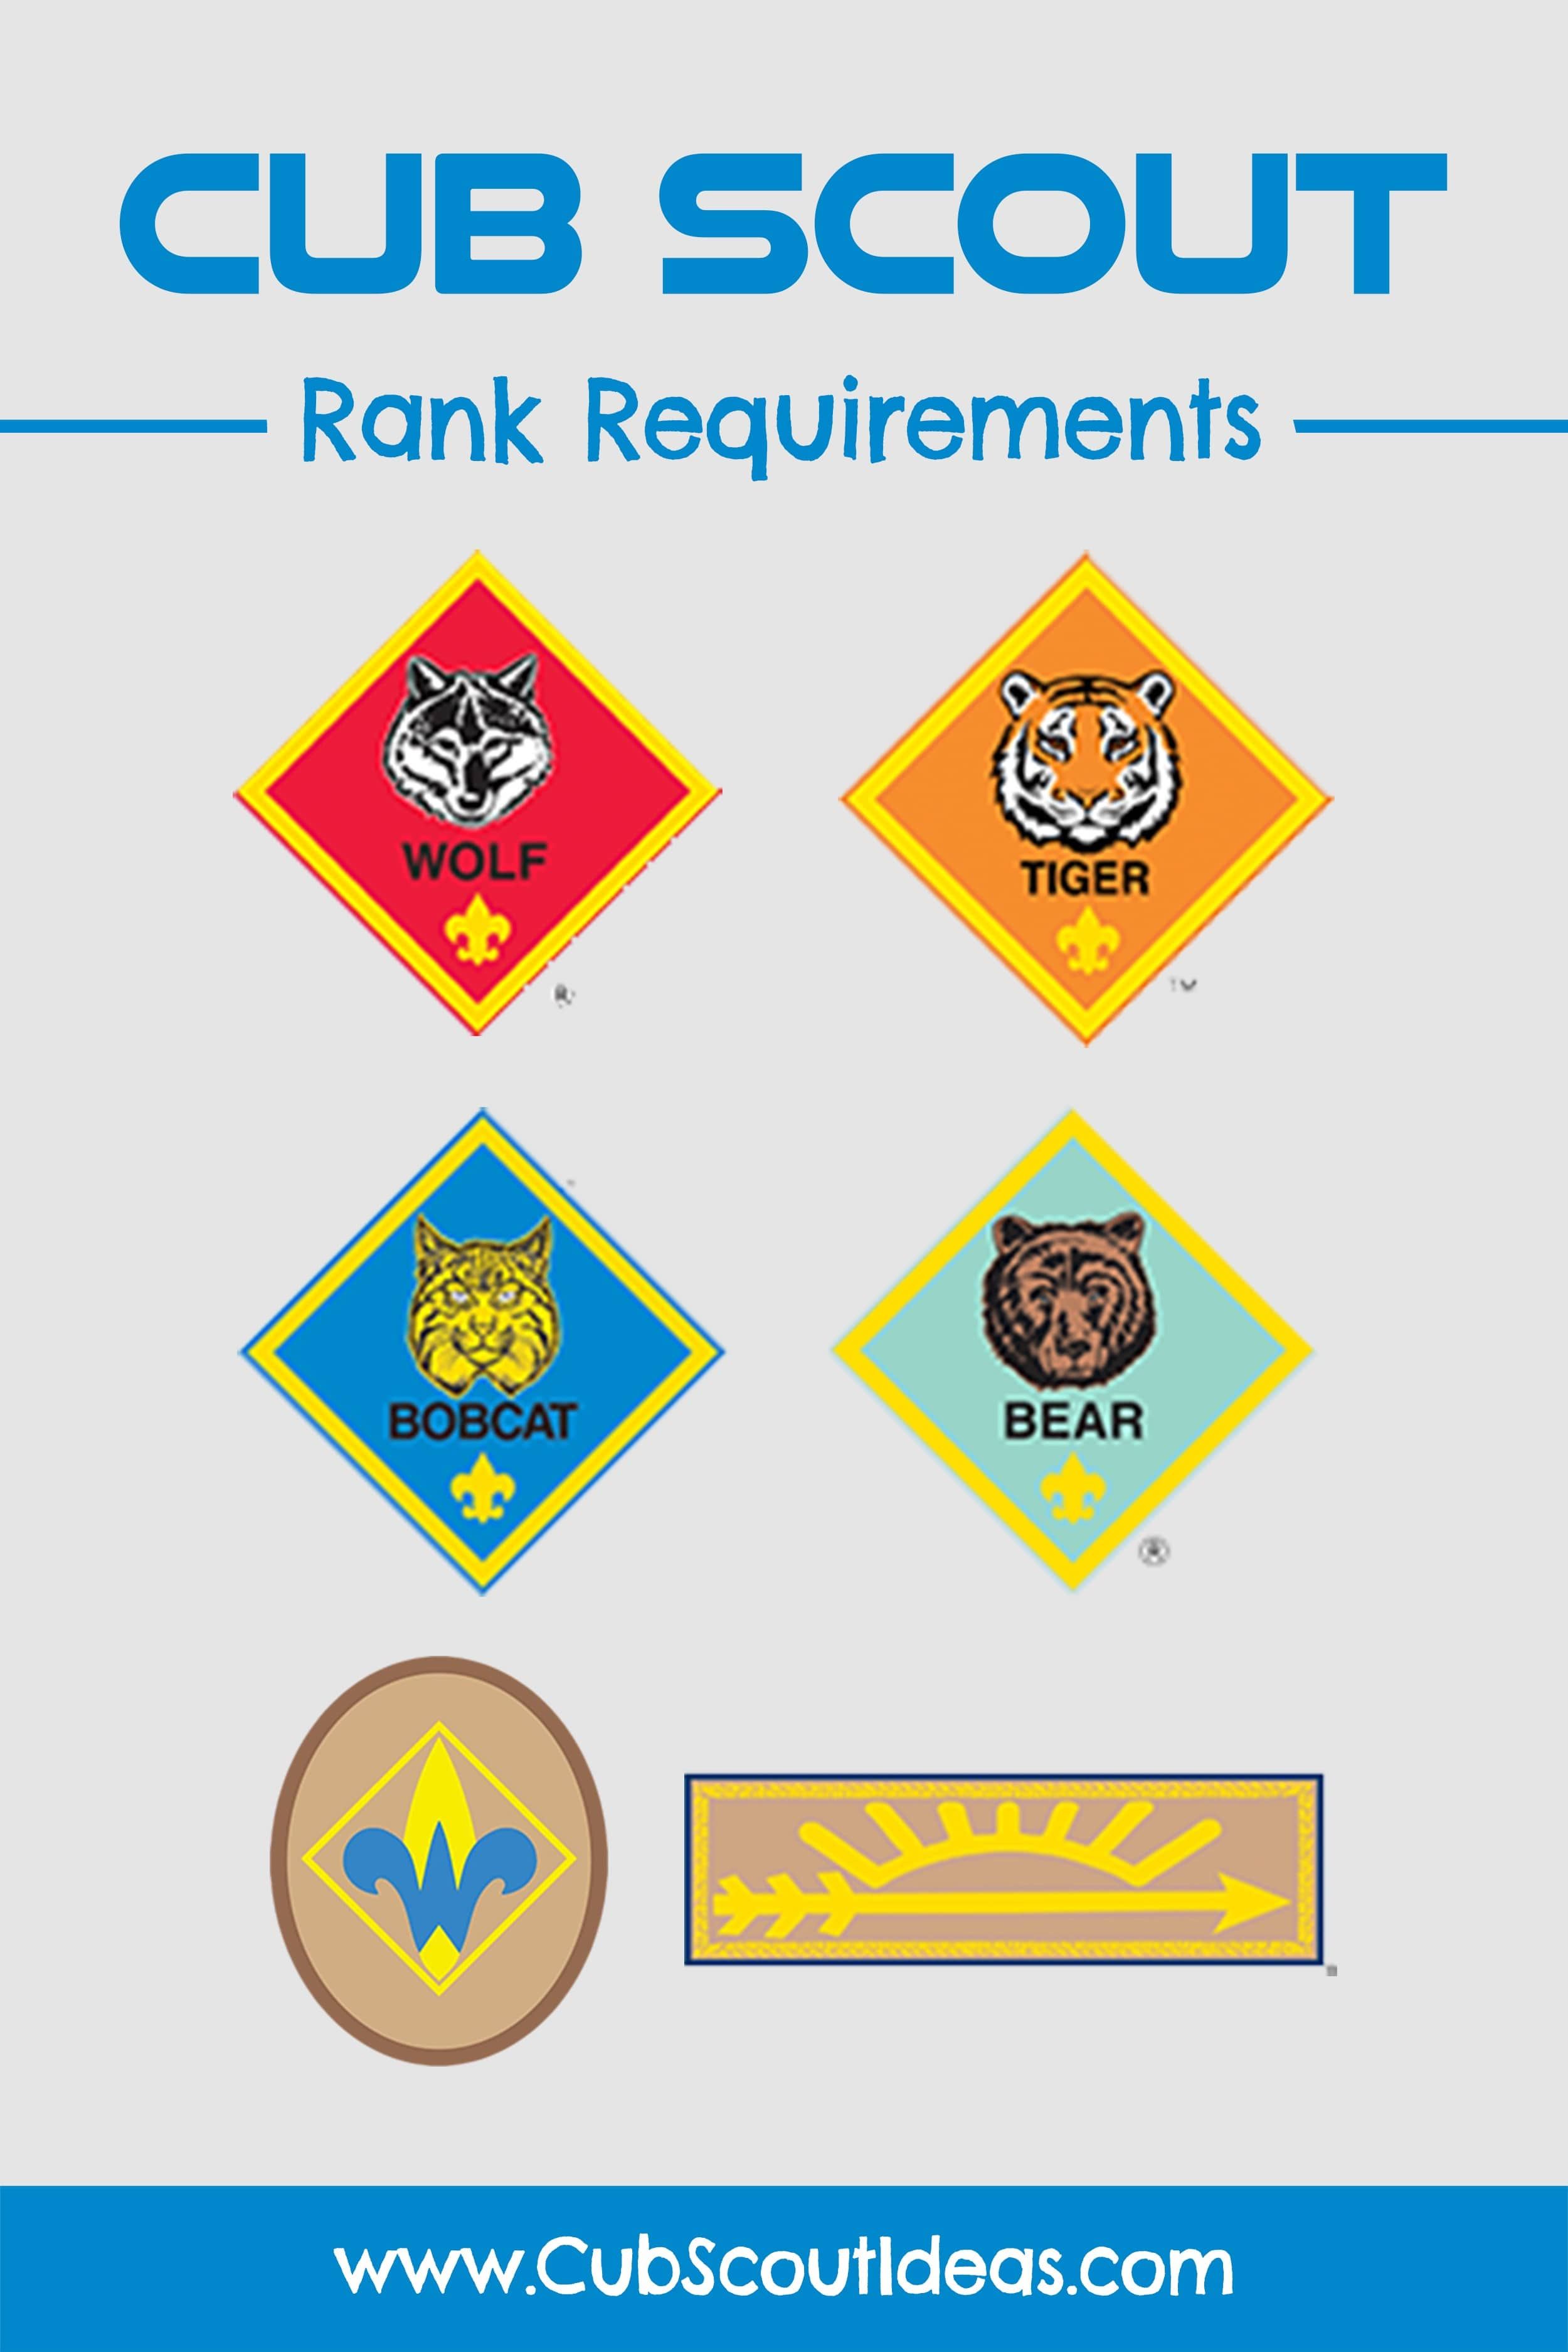 Get all of the Cub Scout rank and adventure requirements here! #CubScouts #CubScout #Scouting #Webelos #ArrowOfLight